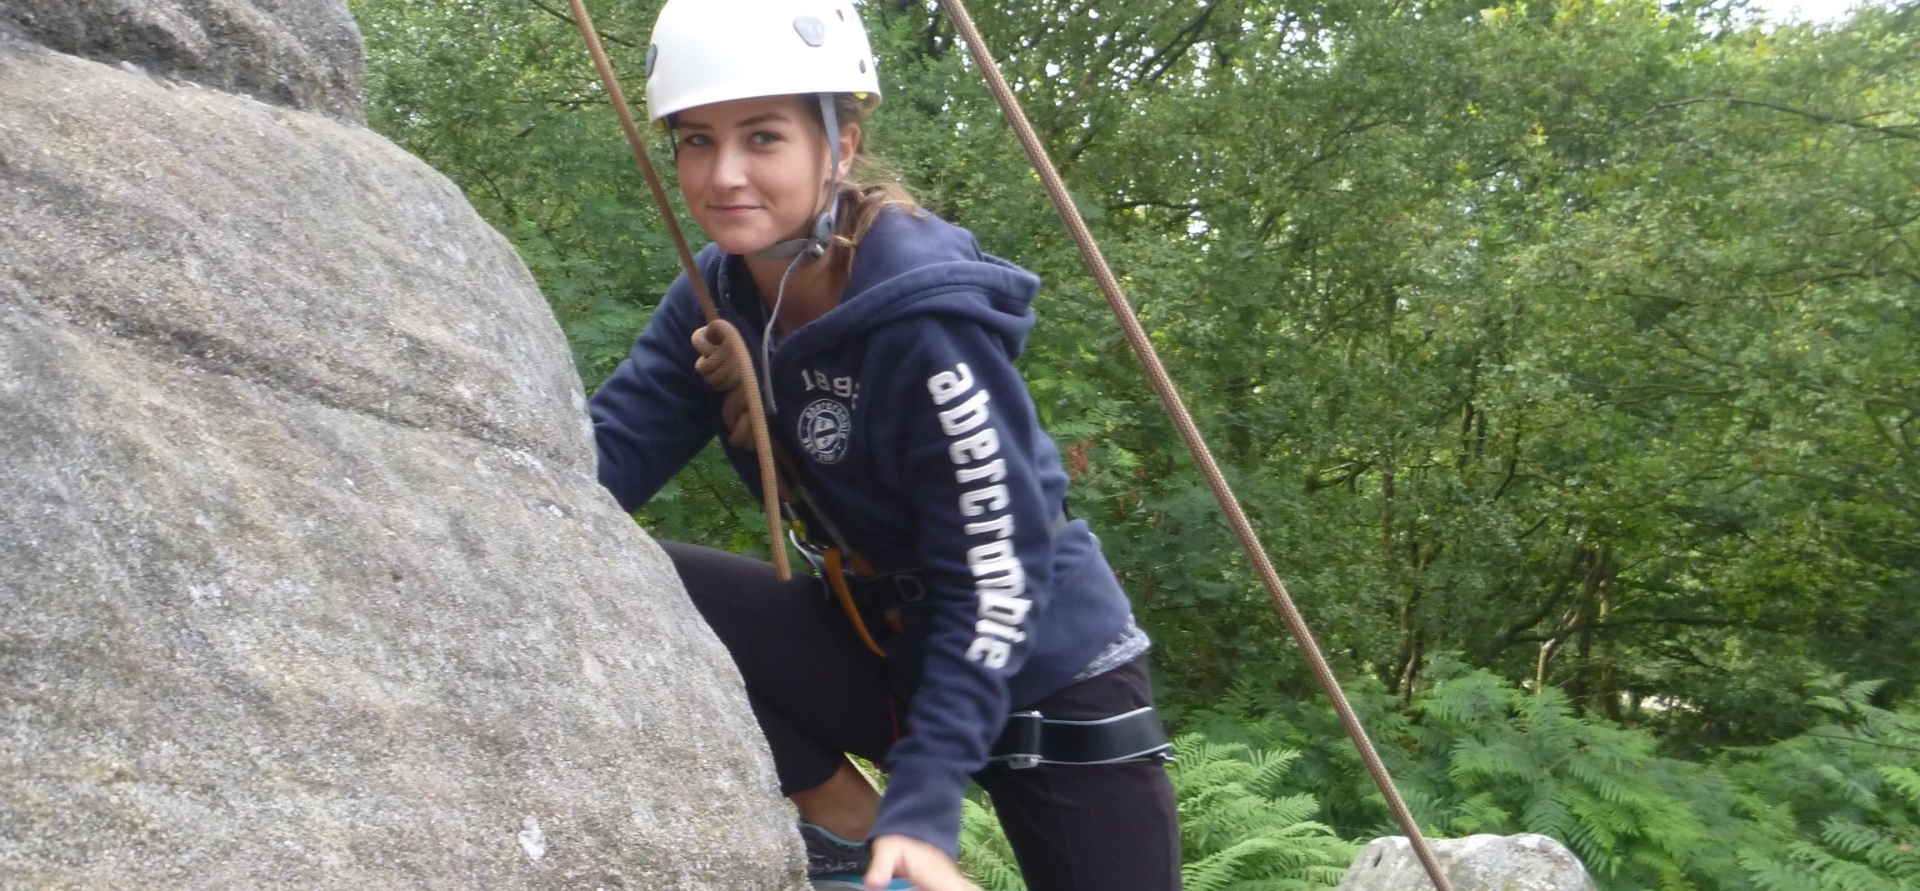 Yorkshire Rock Climbing Experience For 4-8